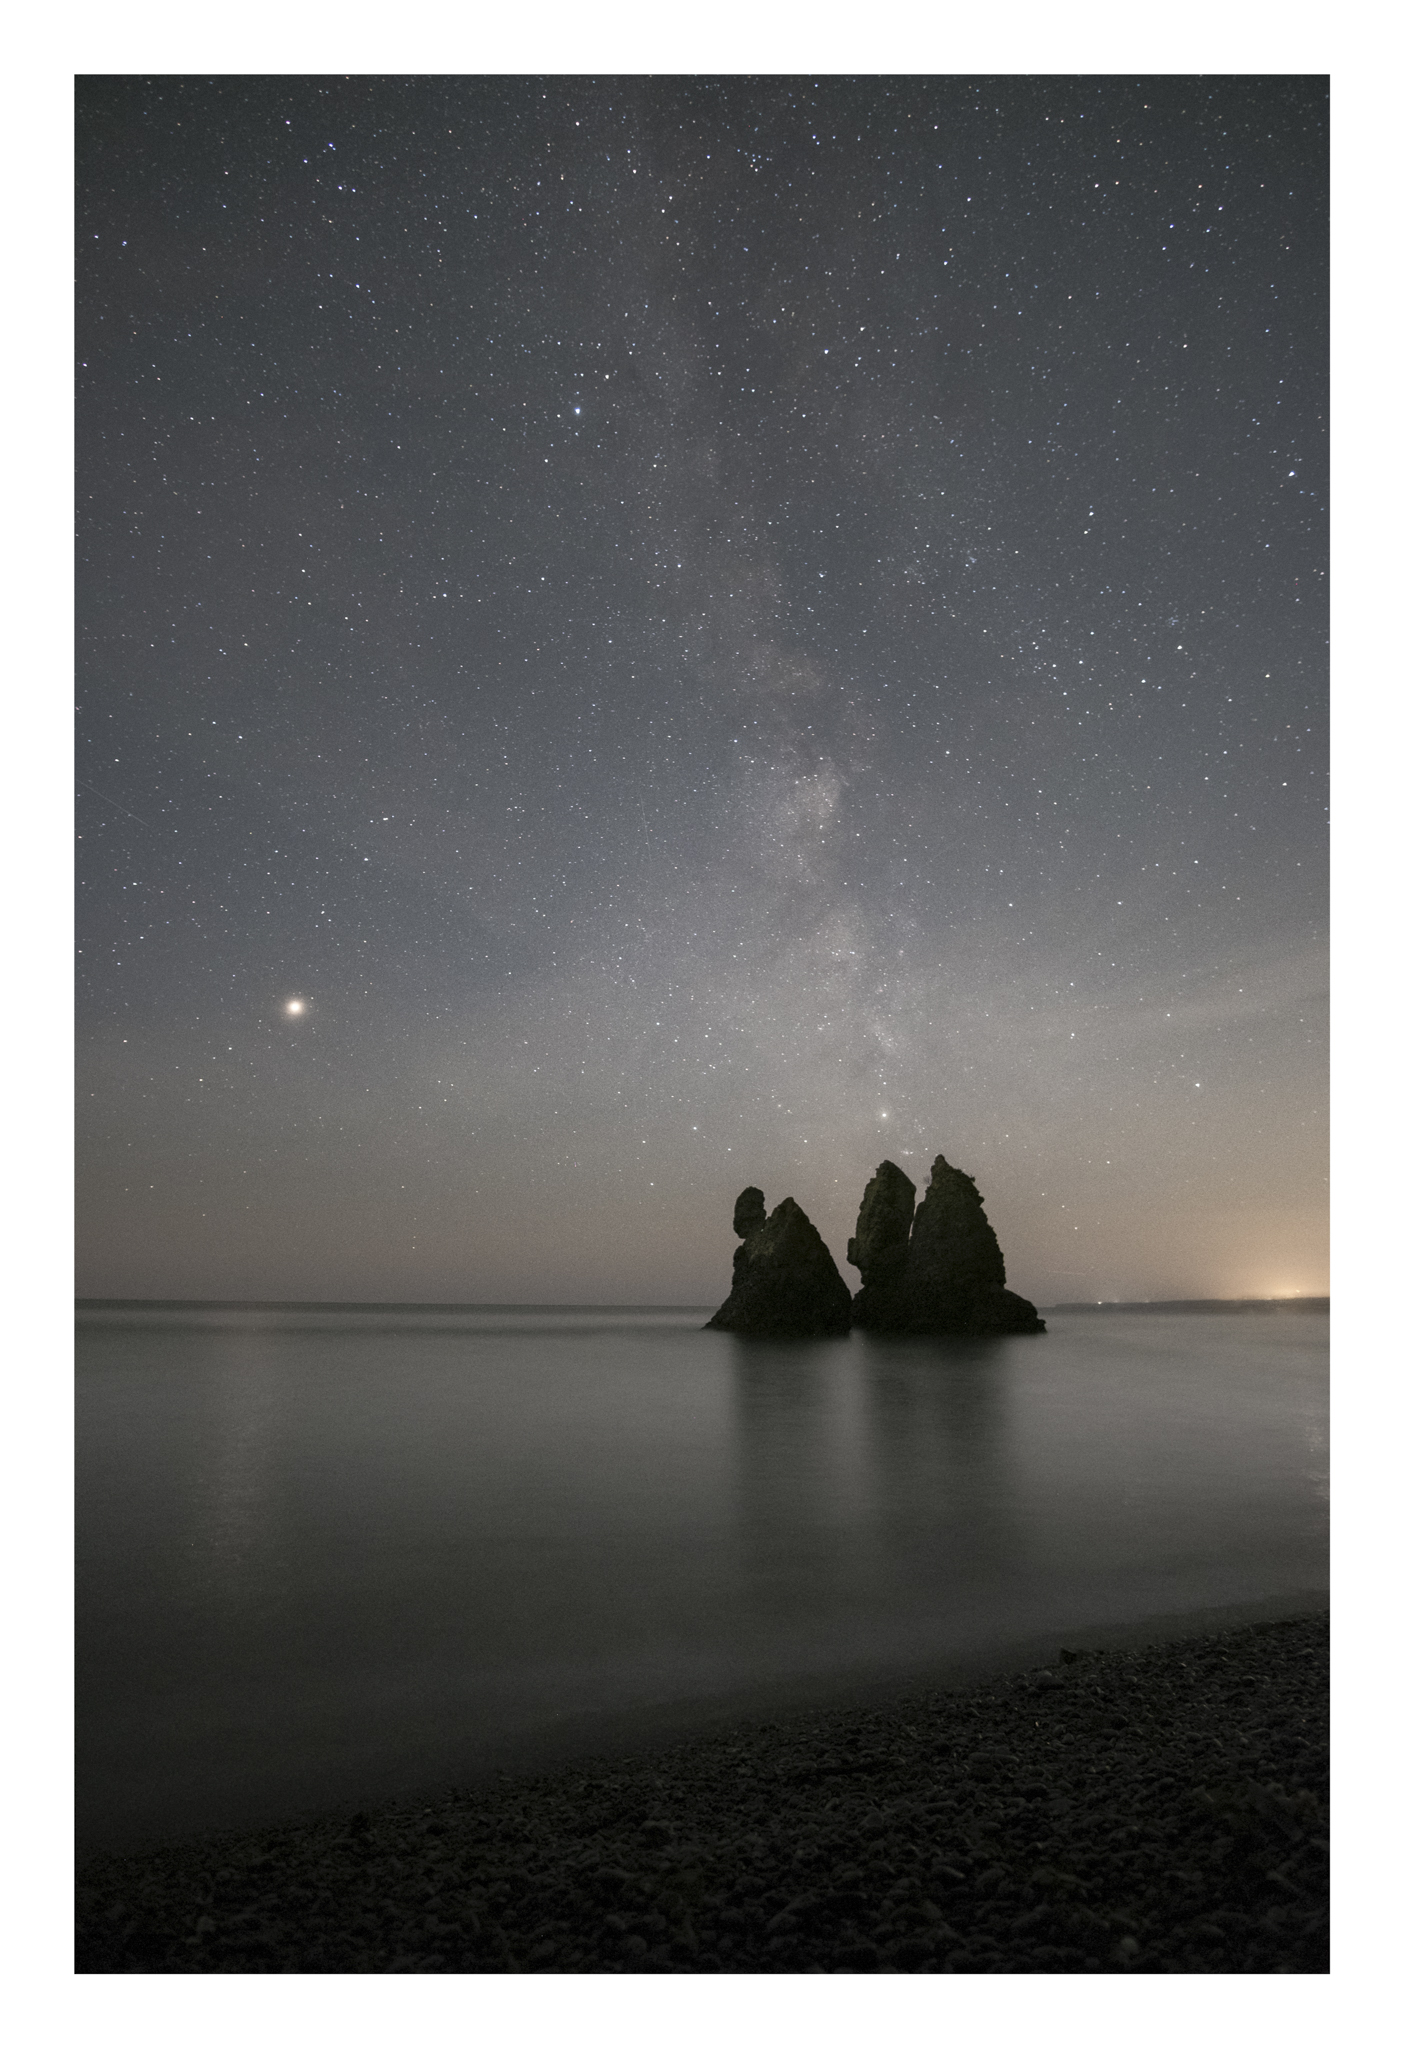 Milkyway 5 copper coast astrophotography